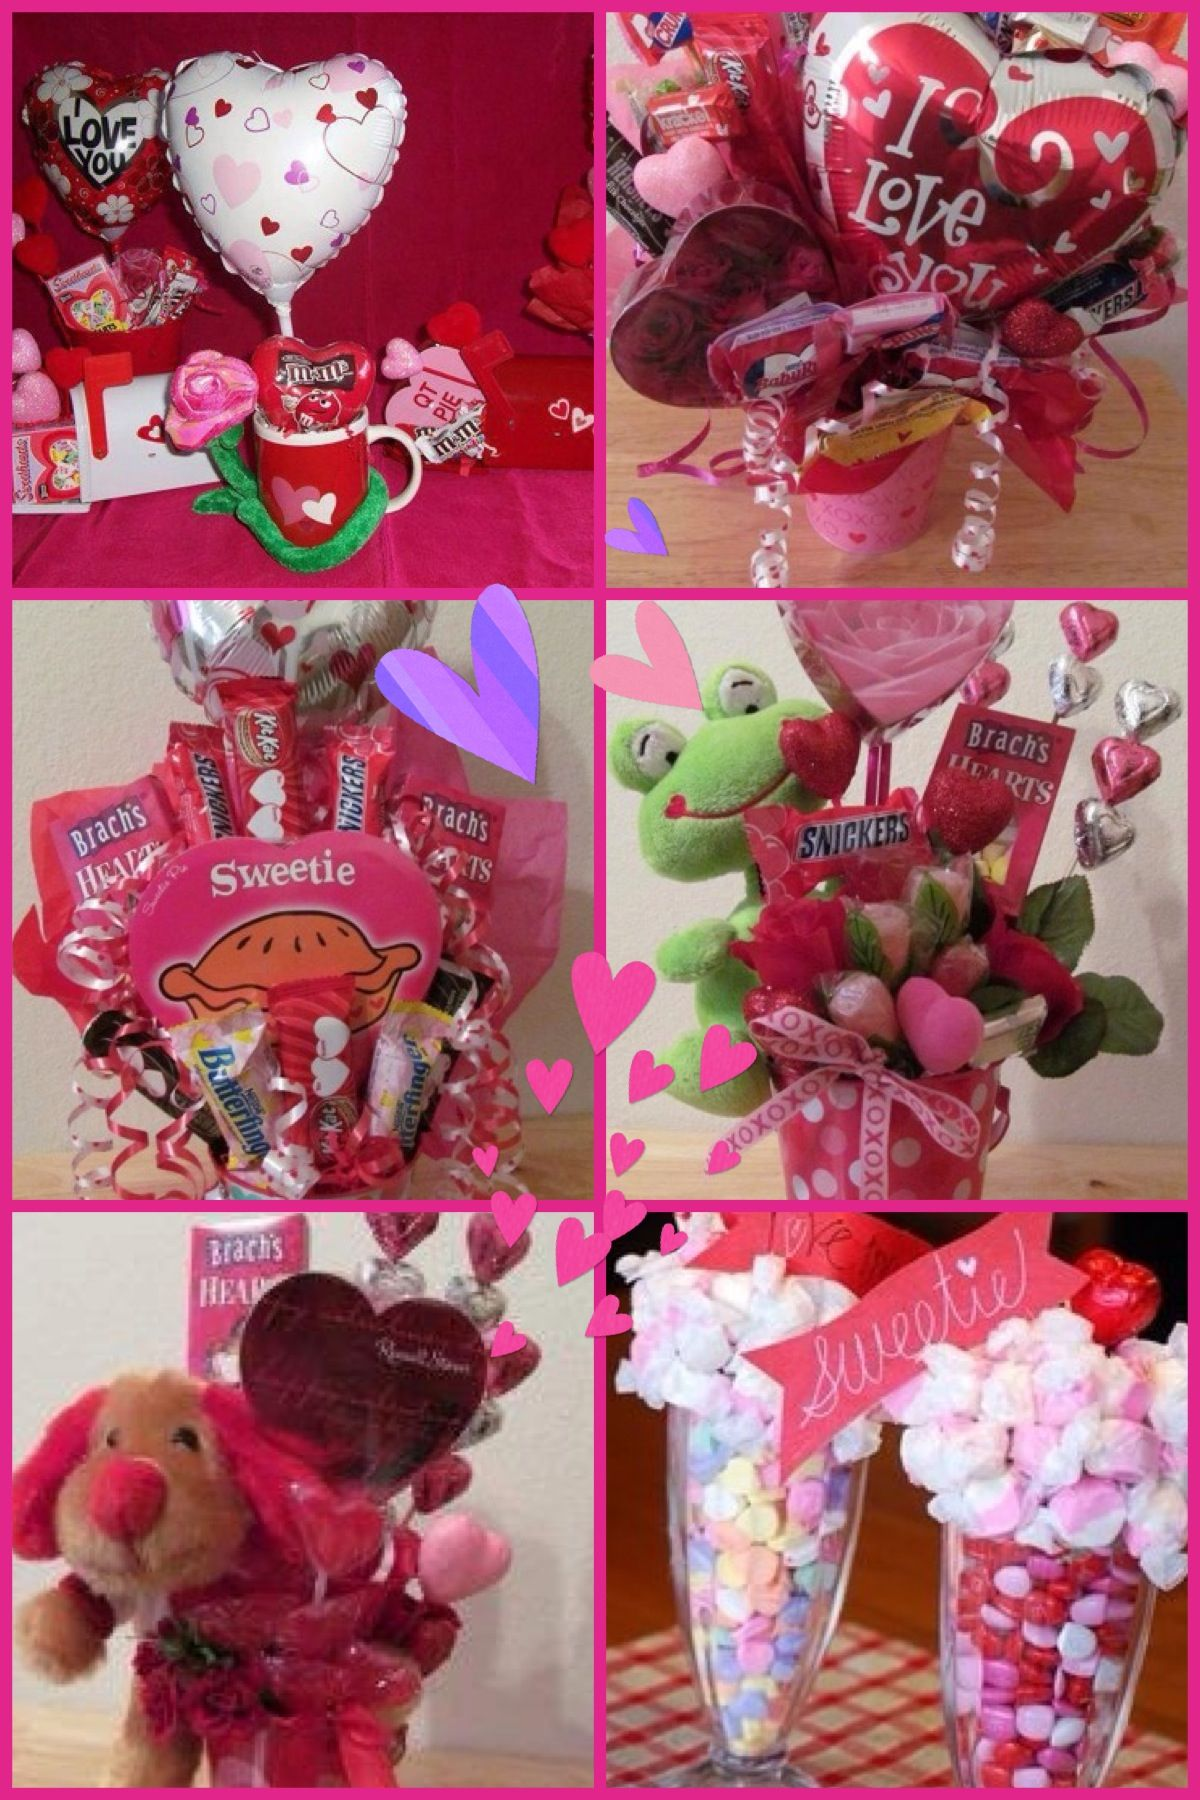 37 Beautiful Valentine Candy Bouquet Ideas - Viral Decoration |Valentines Cotton Candy Bouquet Ideas